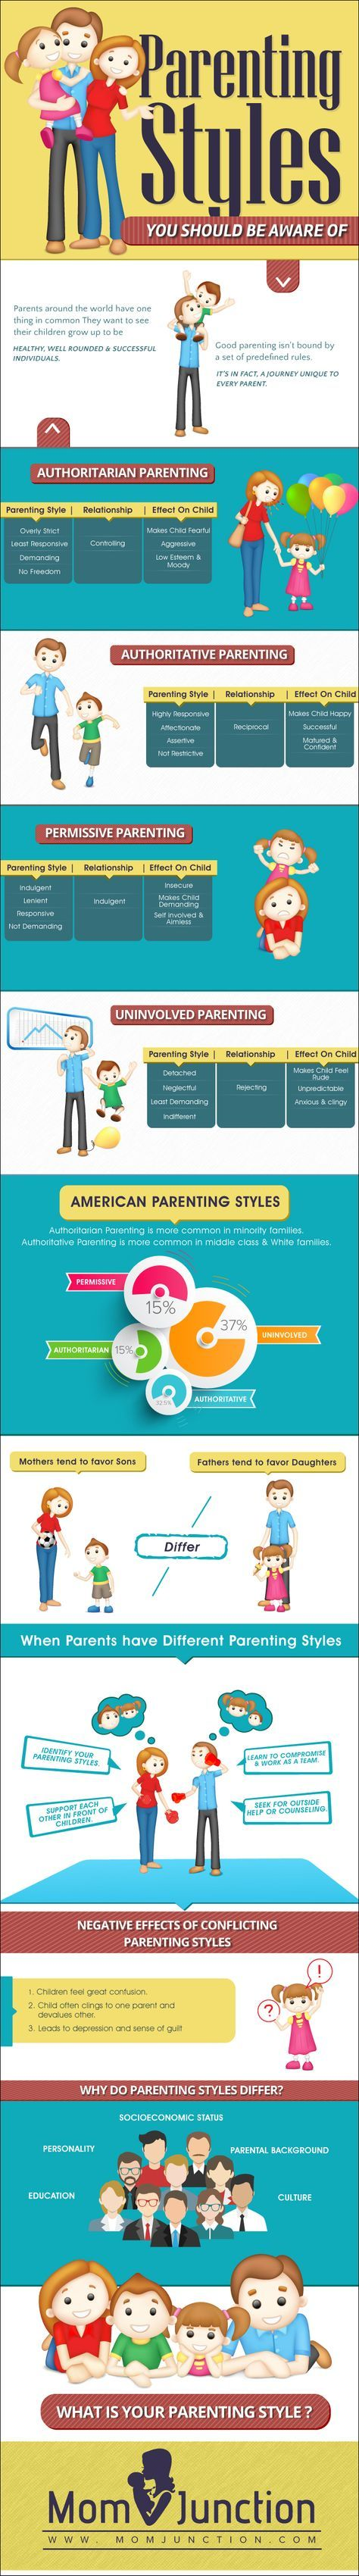 Infographic: What Is Your Parenting Style? - Aim for Authoritative - Responsive, Involved, Provides and Structure